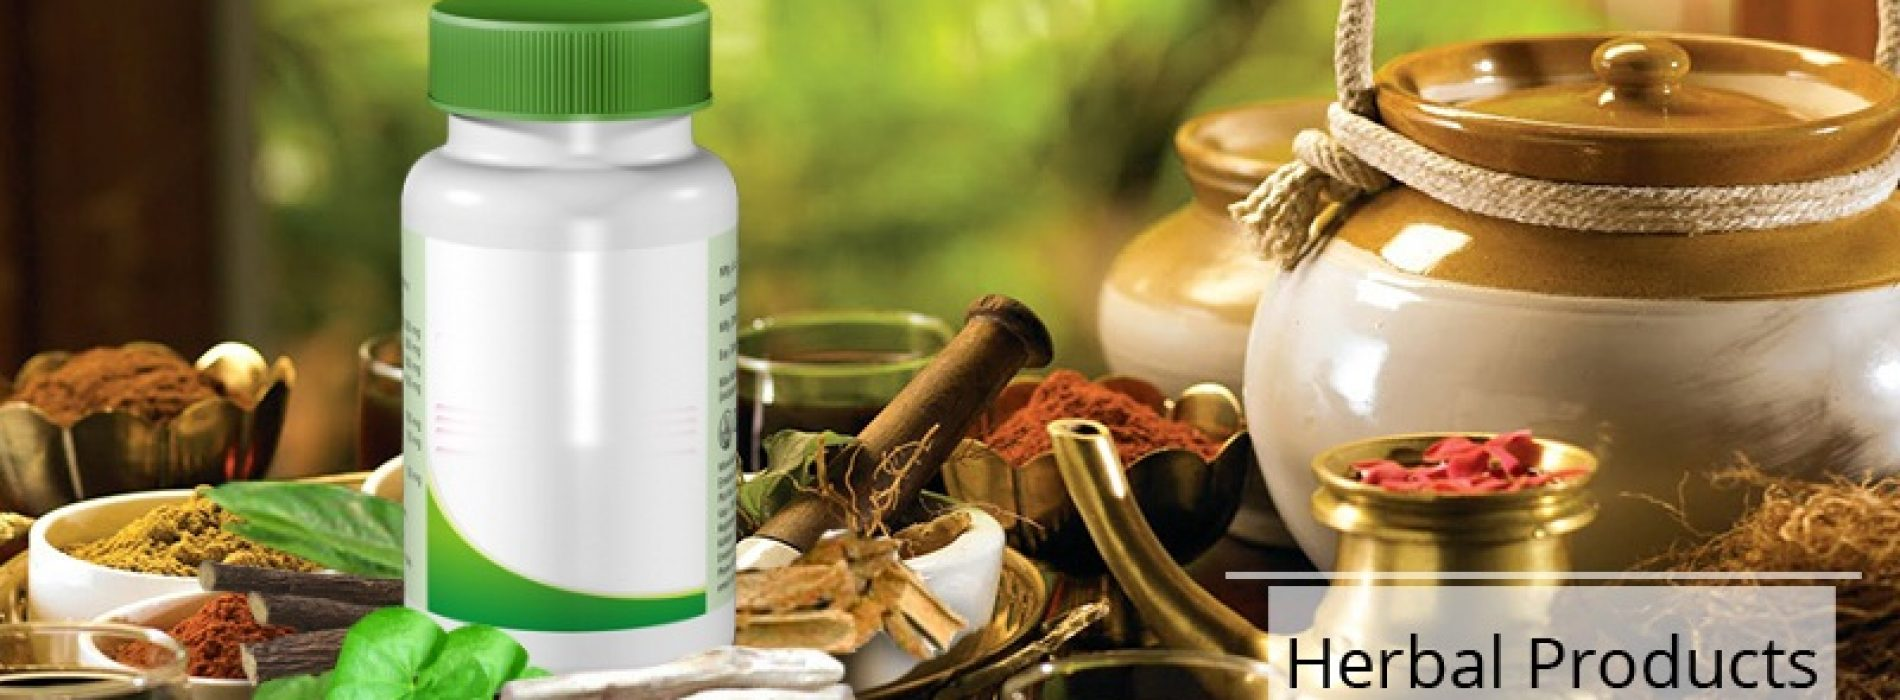 Herbal Product for Hypertension